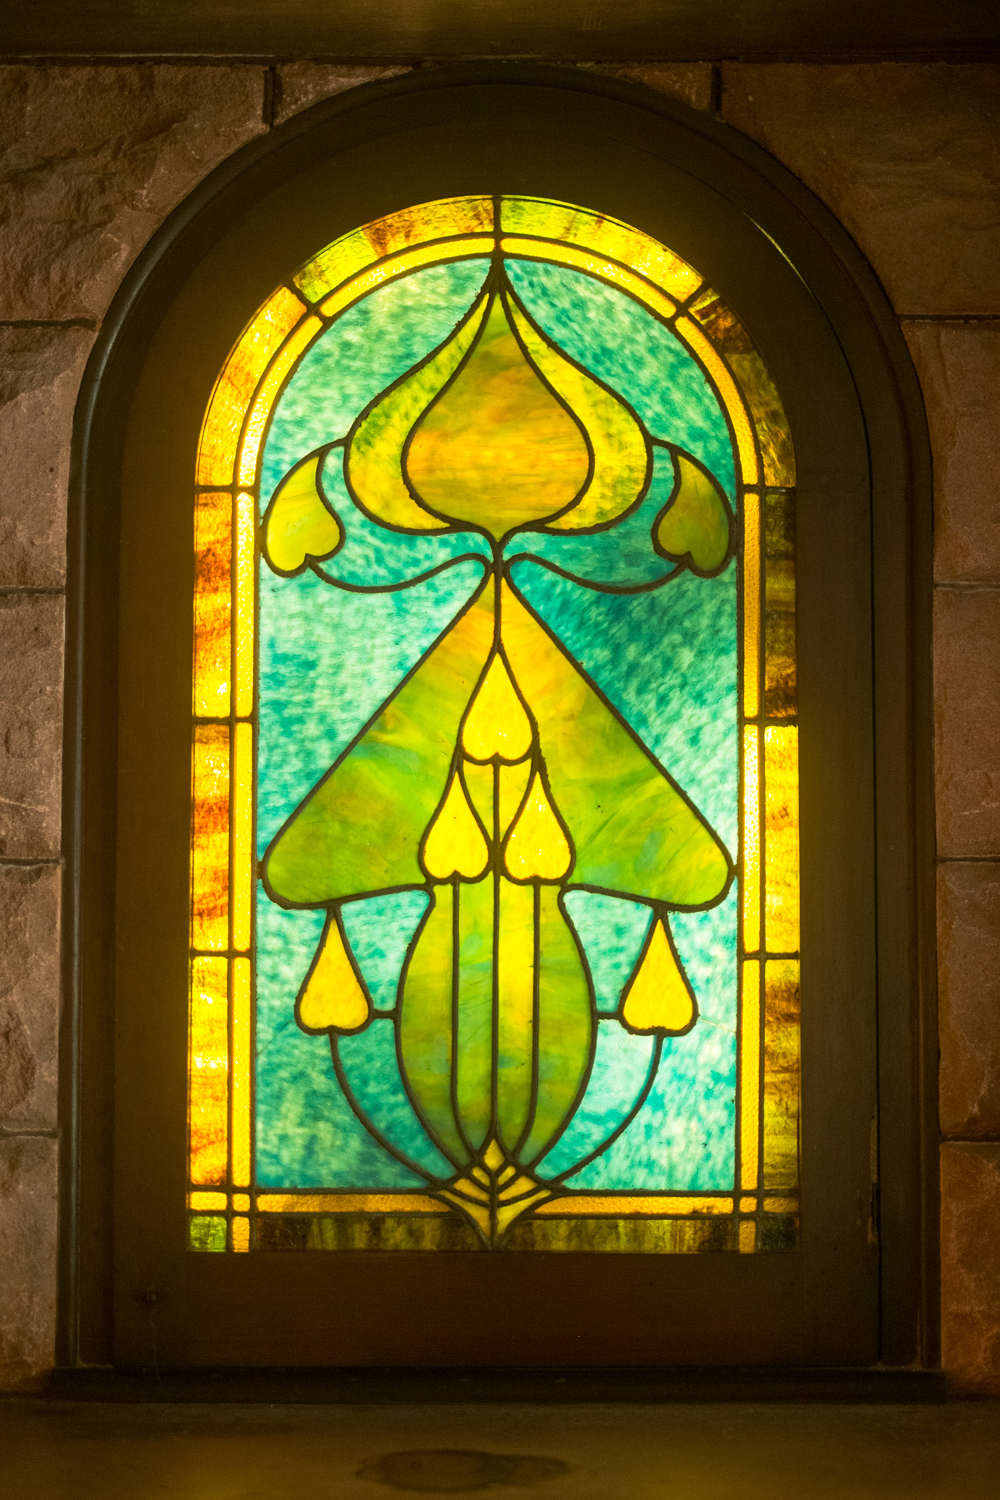 stained-glass-window-1.jpg